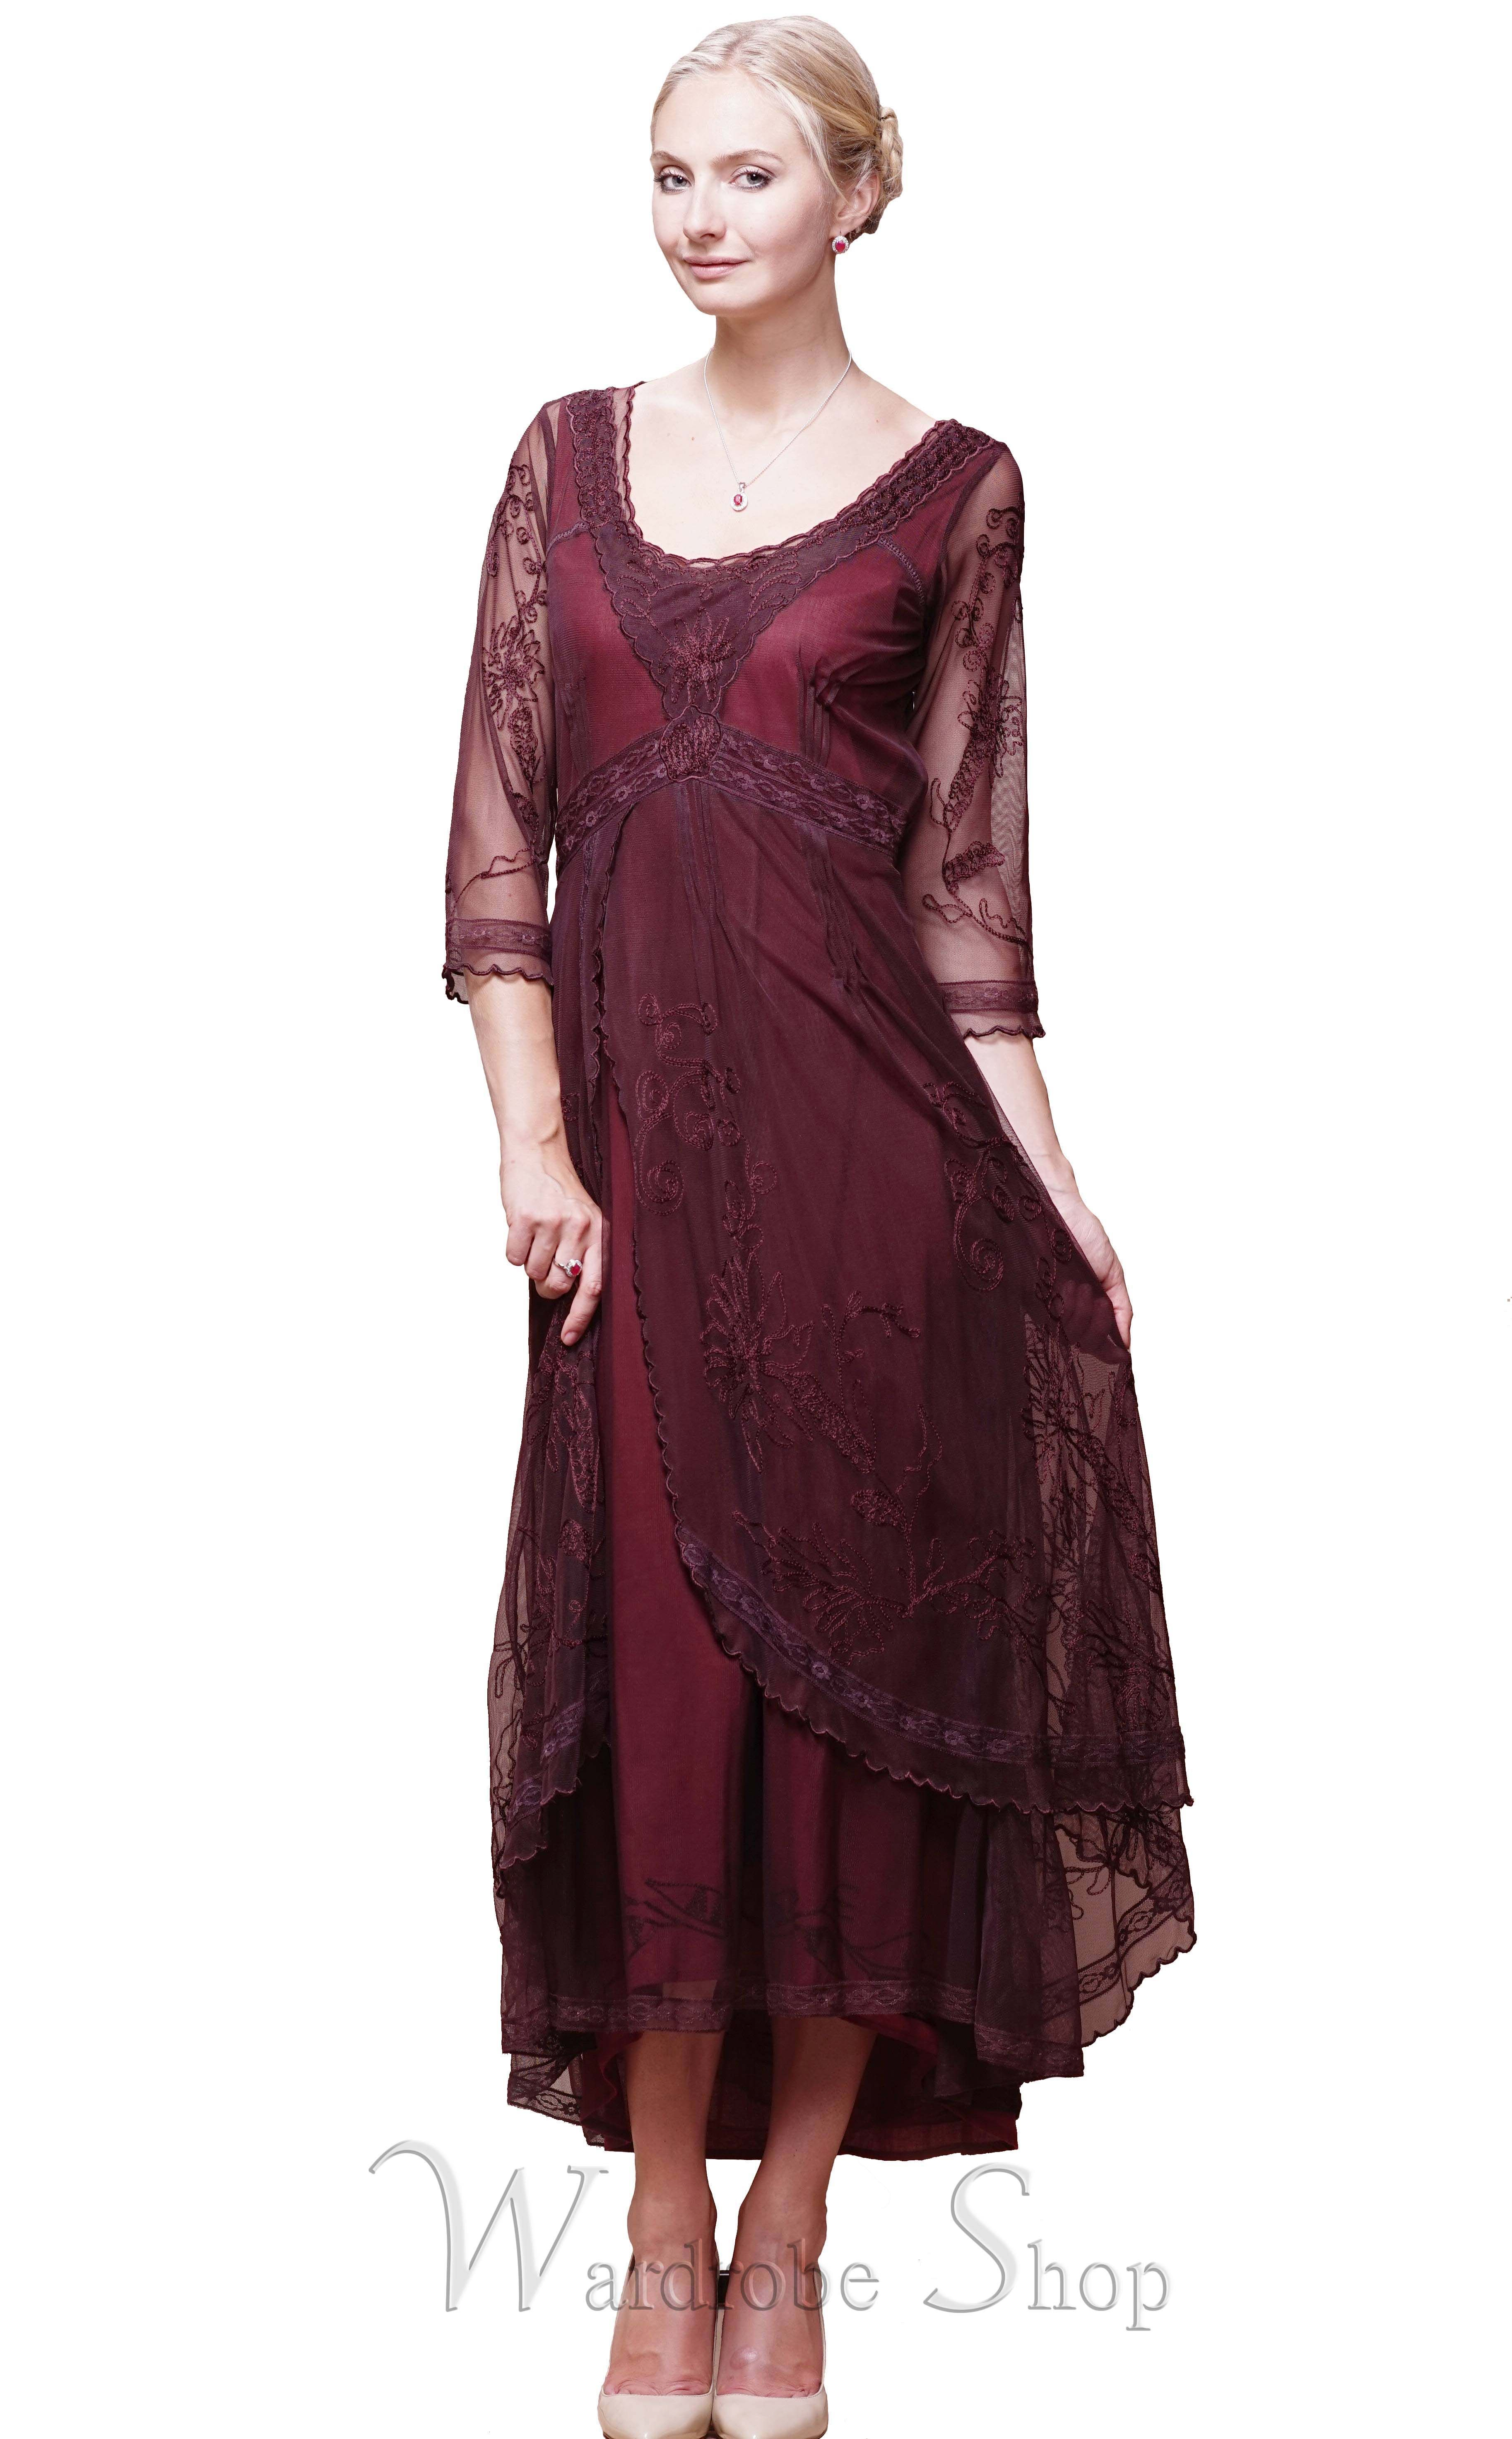 Downton Abbey Tea Party Gown In Ruby By Nataya Vintage Style